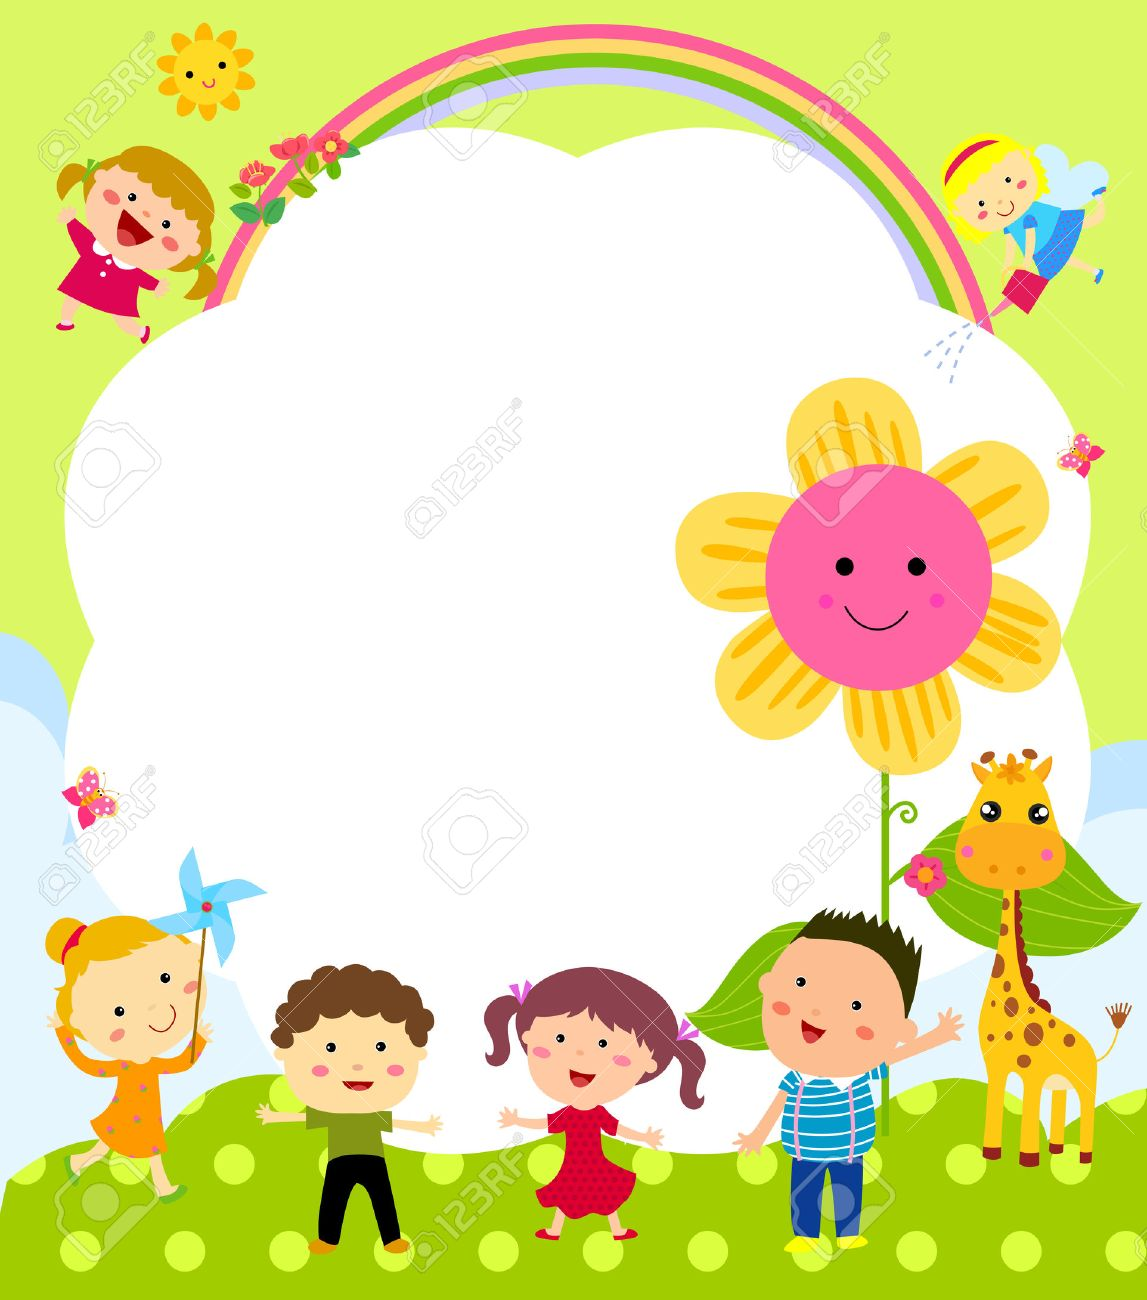 4bdc0037ab1443 Cute Frame With Kids Royalty Free Cliparts, Vectors, And Stock ...